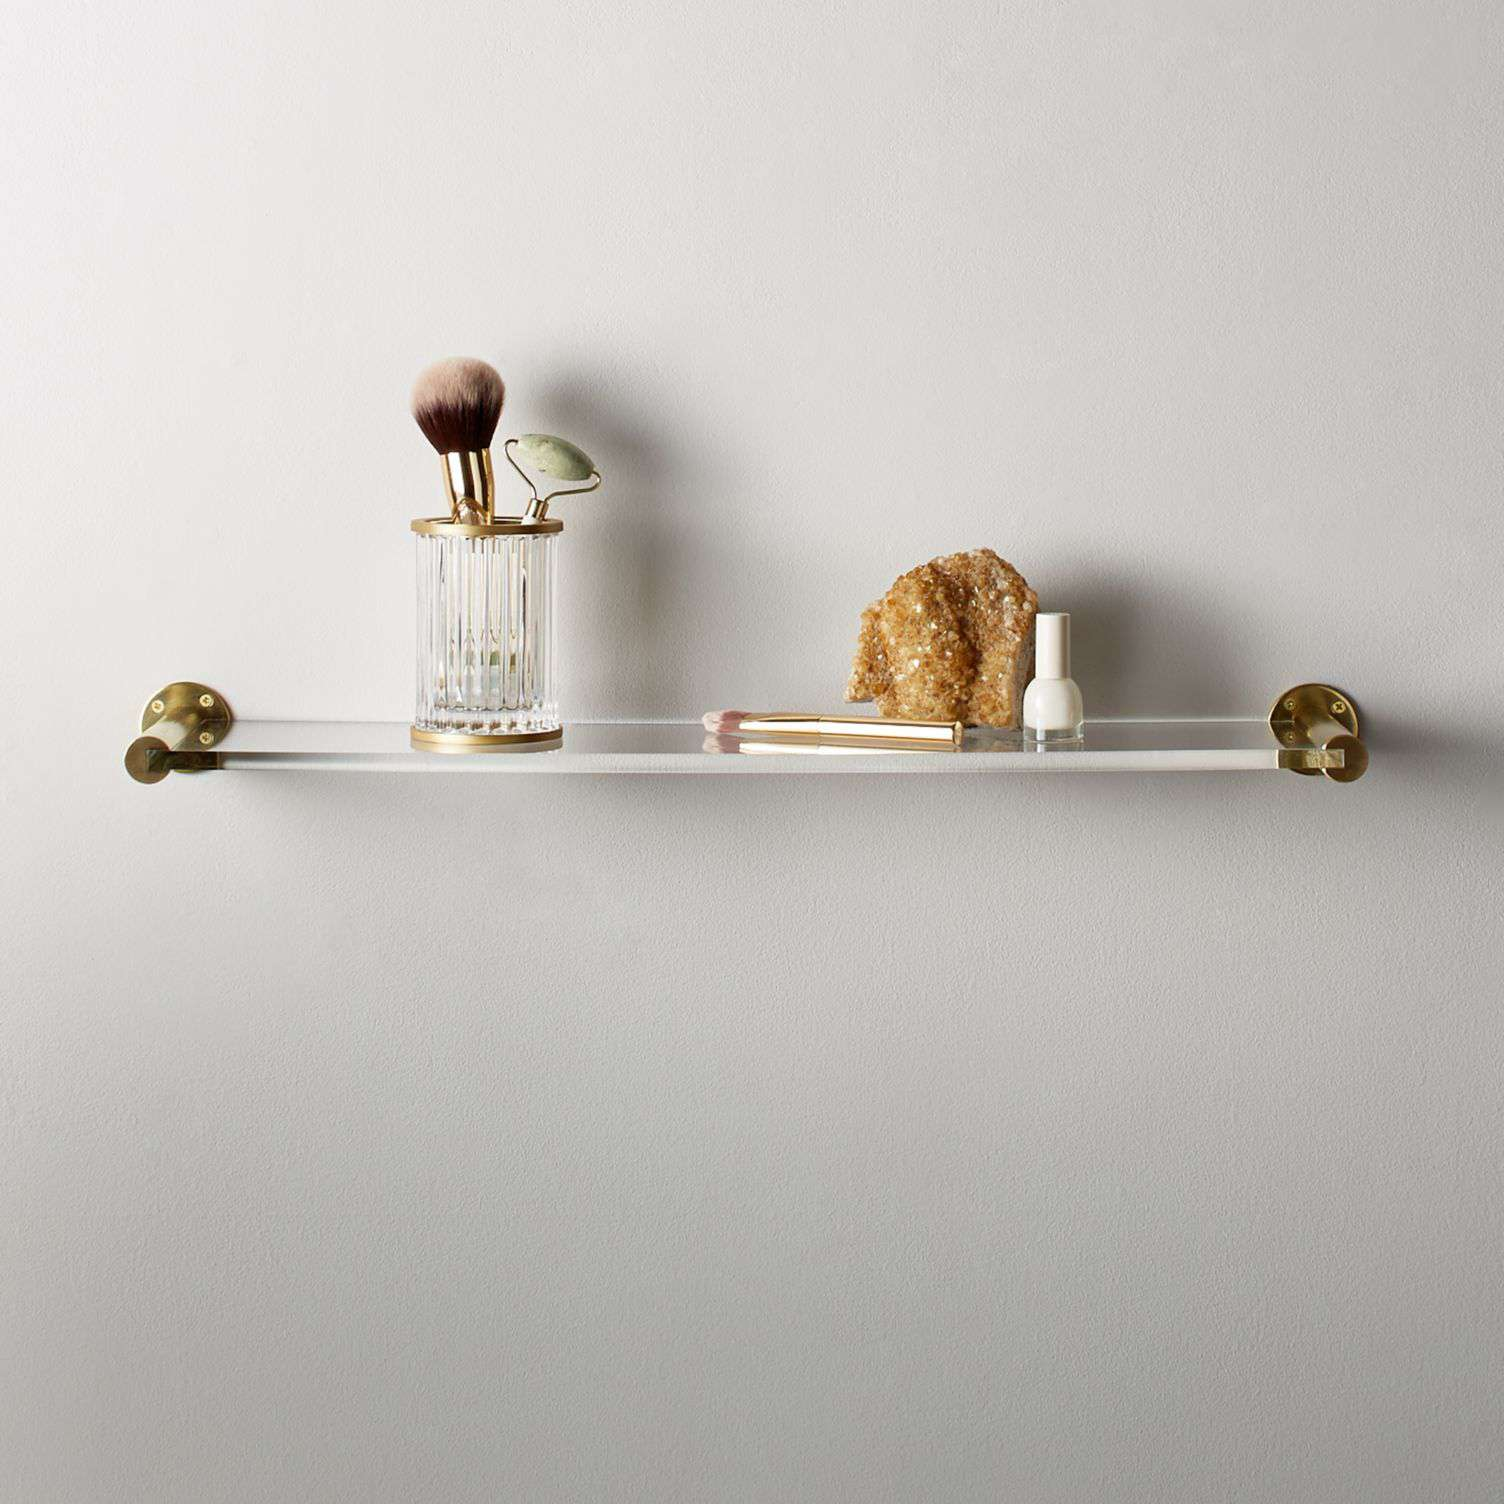 A brass-and-acrylic wall shelf with bathroom accessories on top.